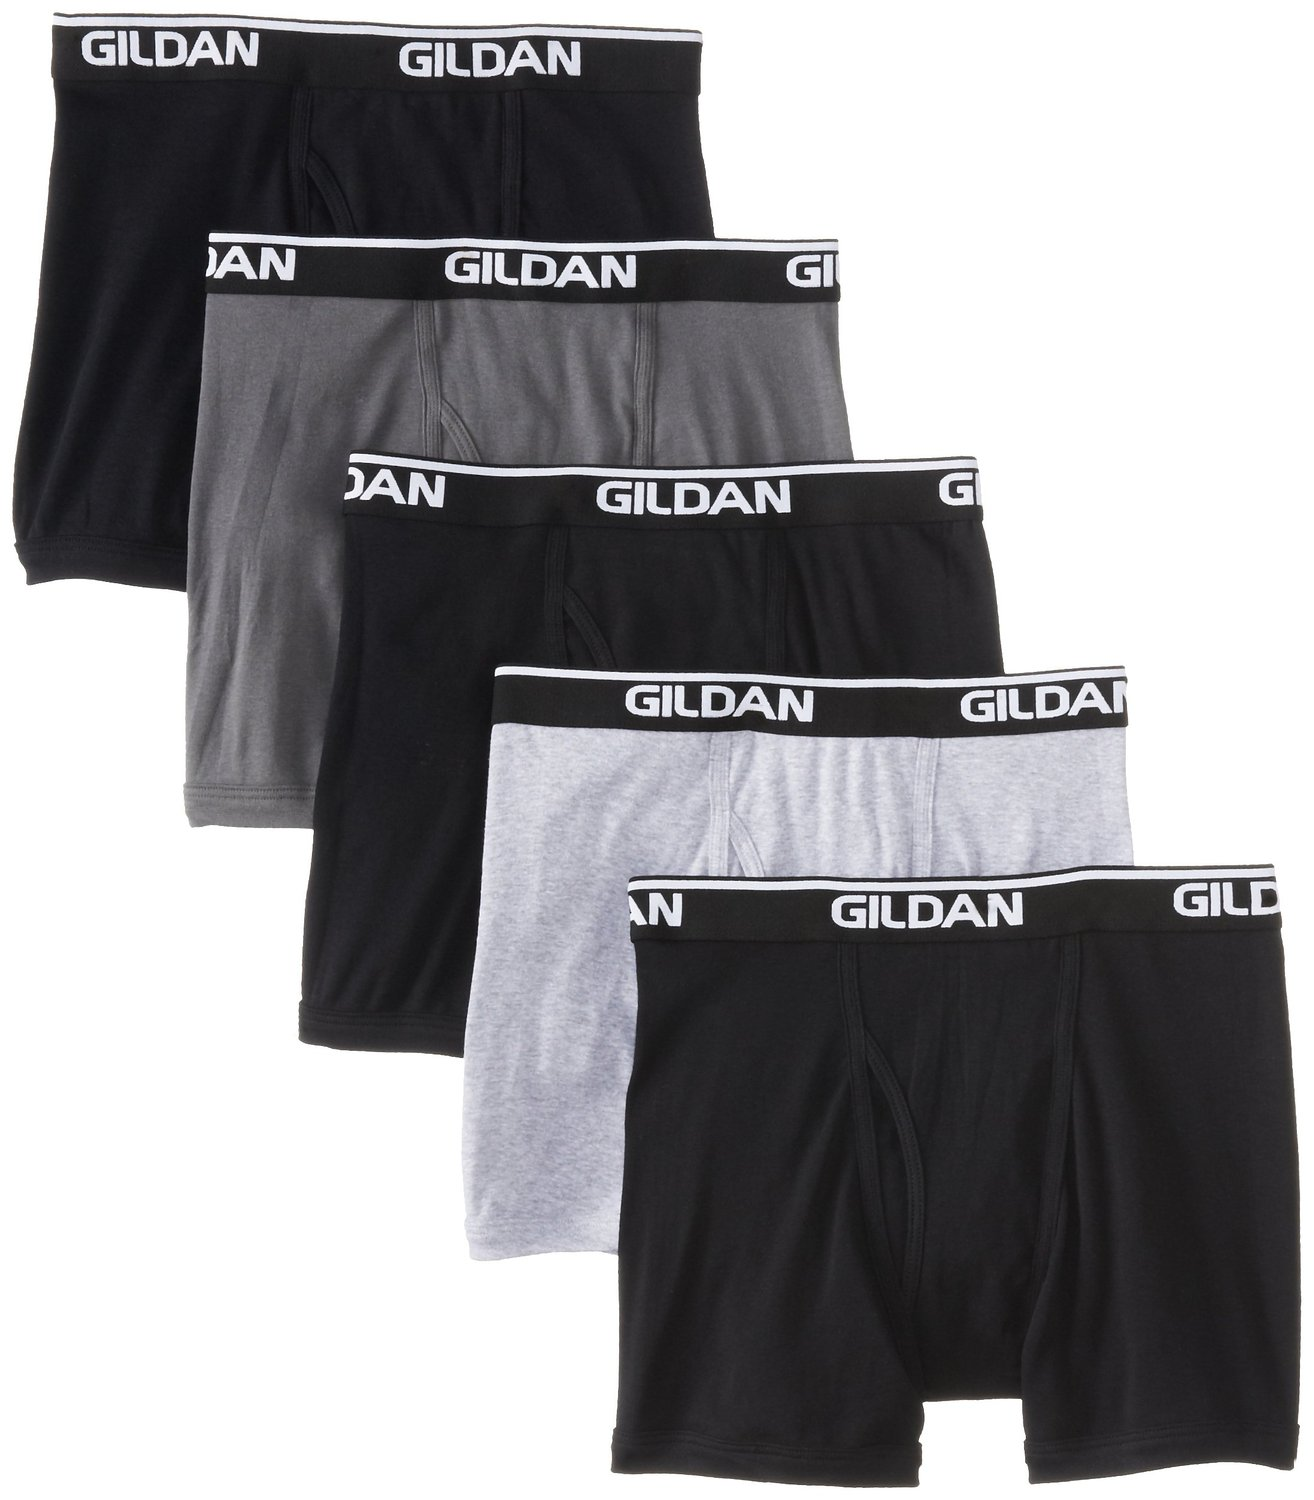 4-Pk Gildan Mens 100% Cotton Briefs